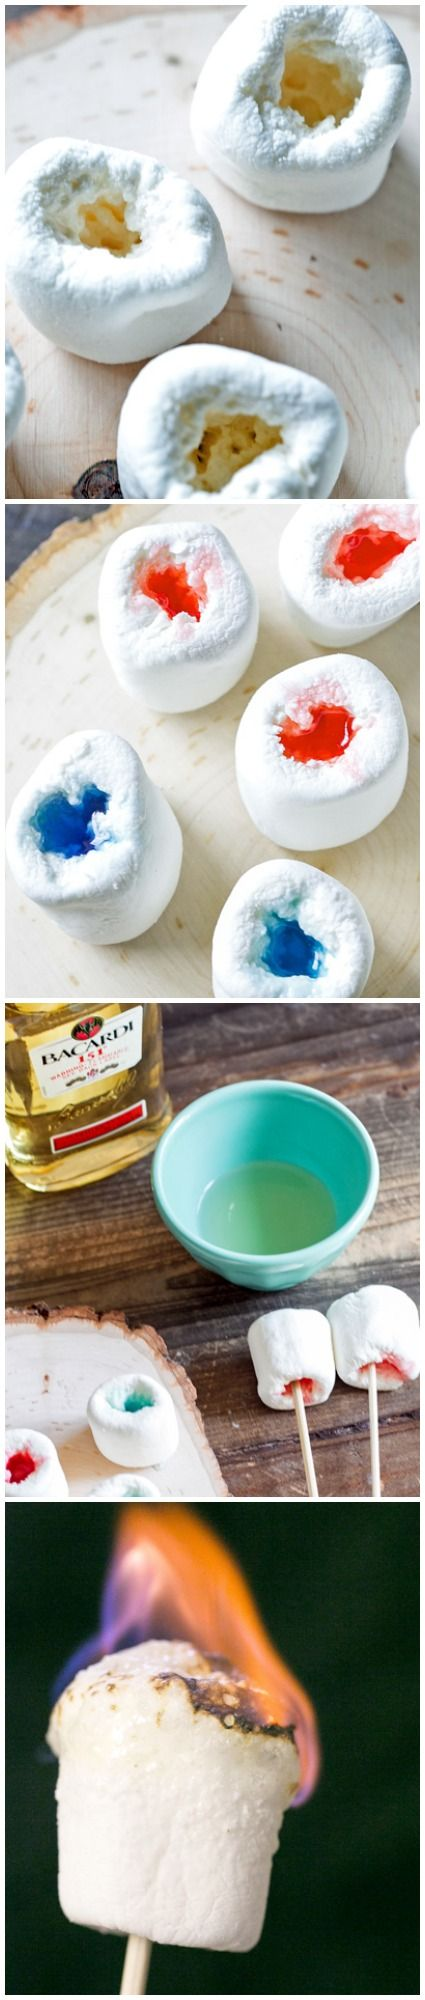 """Flaming Marshmallow Jelly Shots @Design Hub Hamilton Bouthiller-Gendron  @Jordan Bromley Bromley Bromley Bromley Bromley Bromley McCullough...um more ideas for that """"party"""" we shall have soon! (please) :)"""